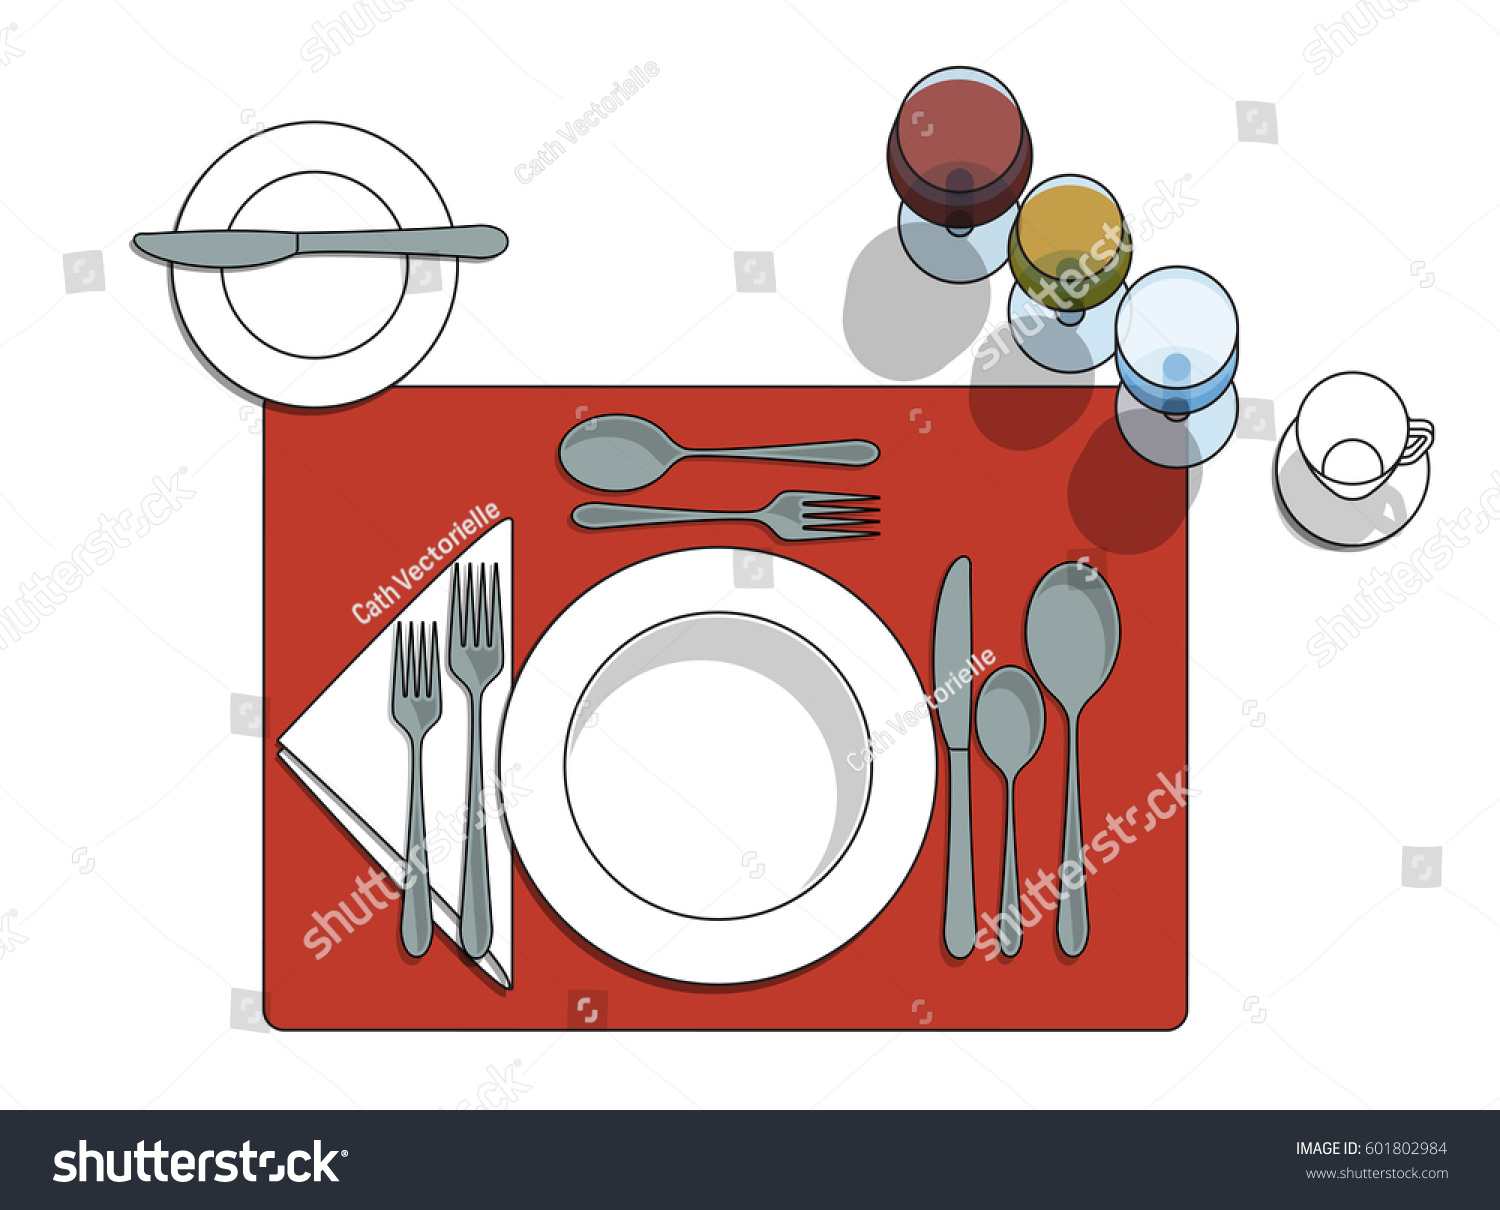 hight resolution of table setting diagram with eating utensils cups placemat